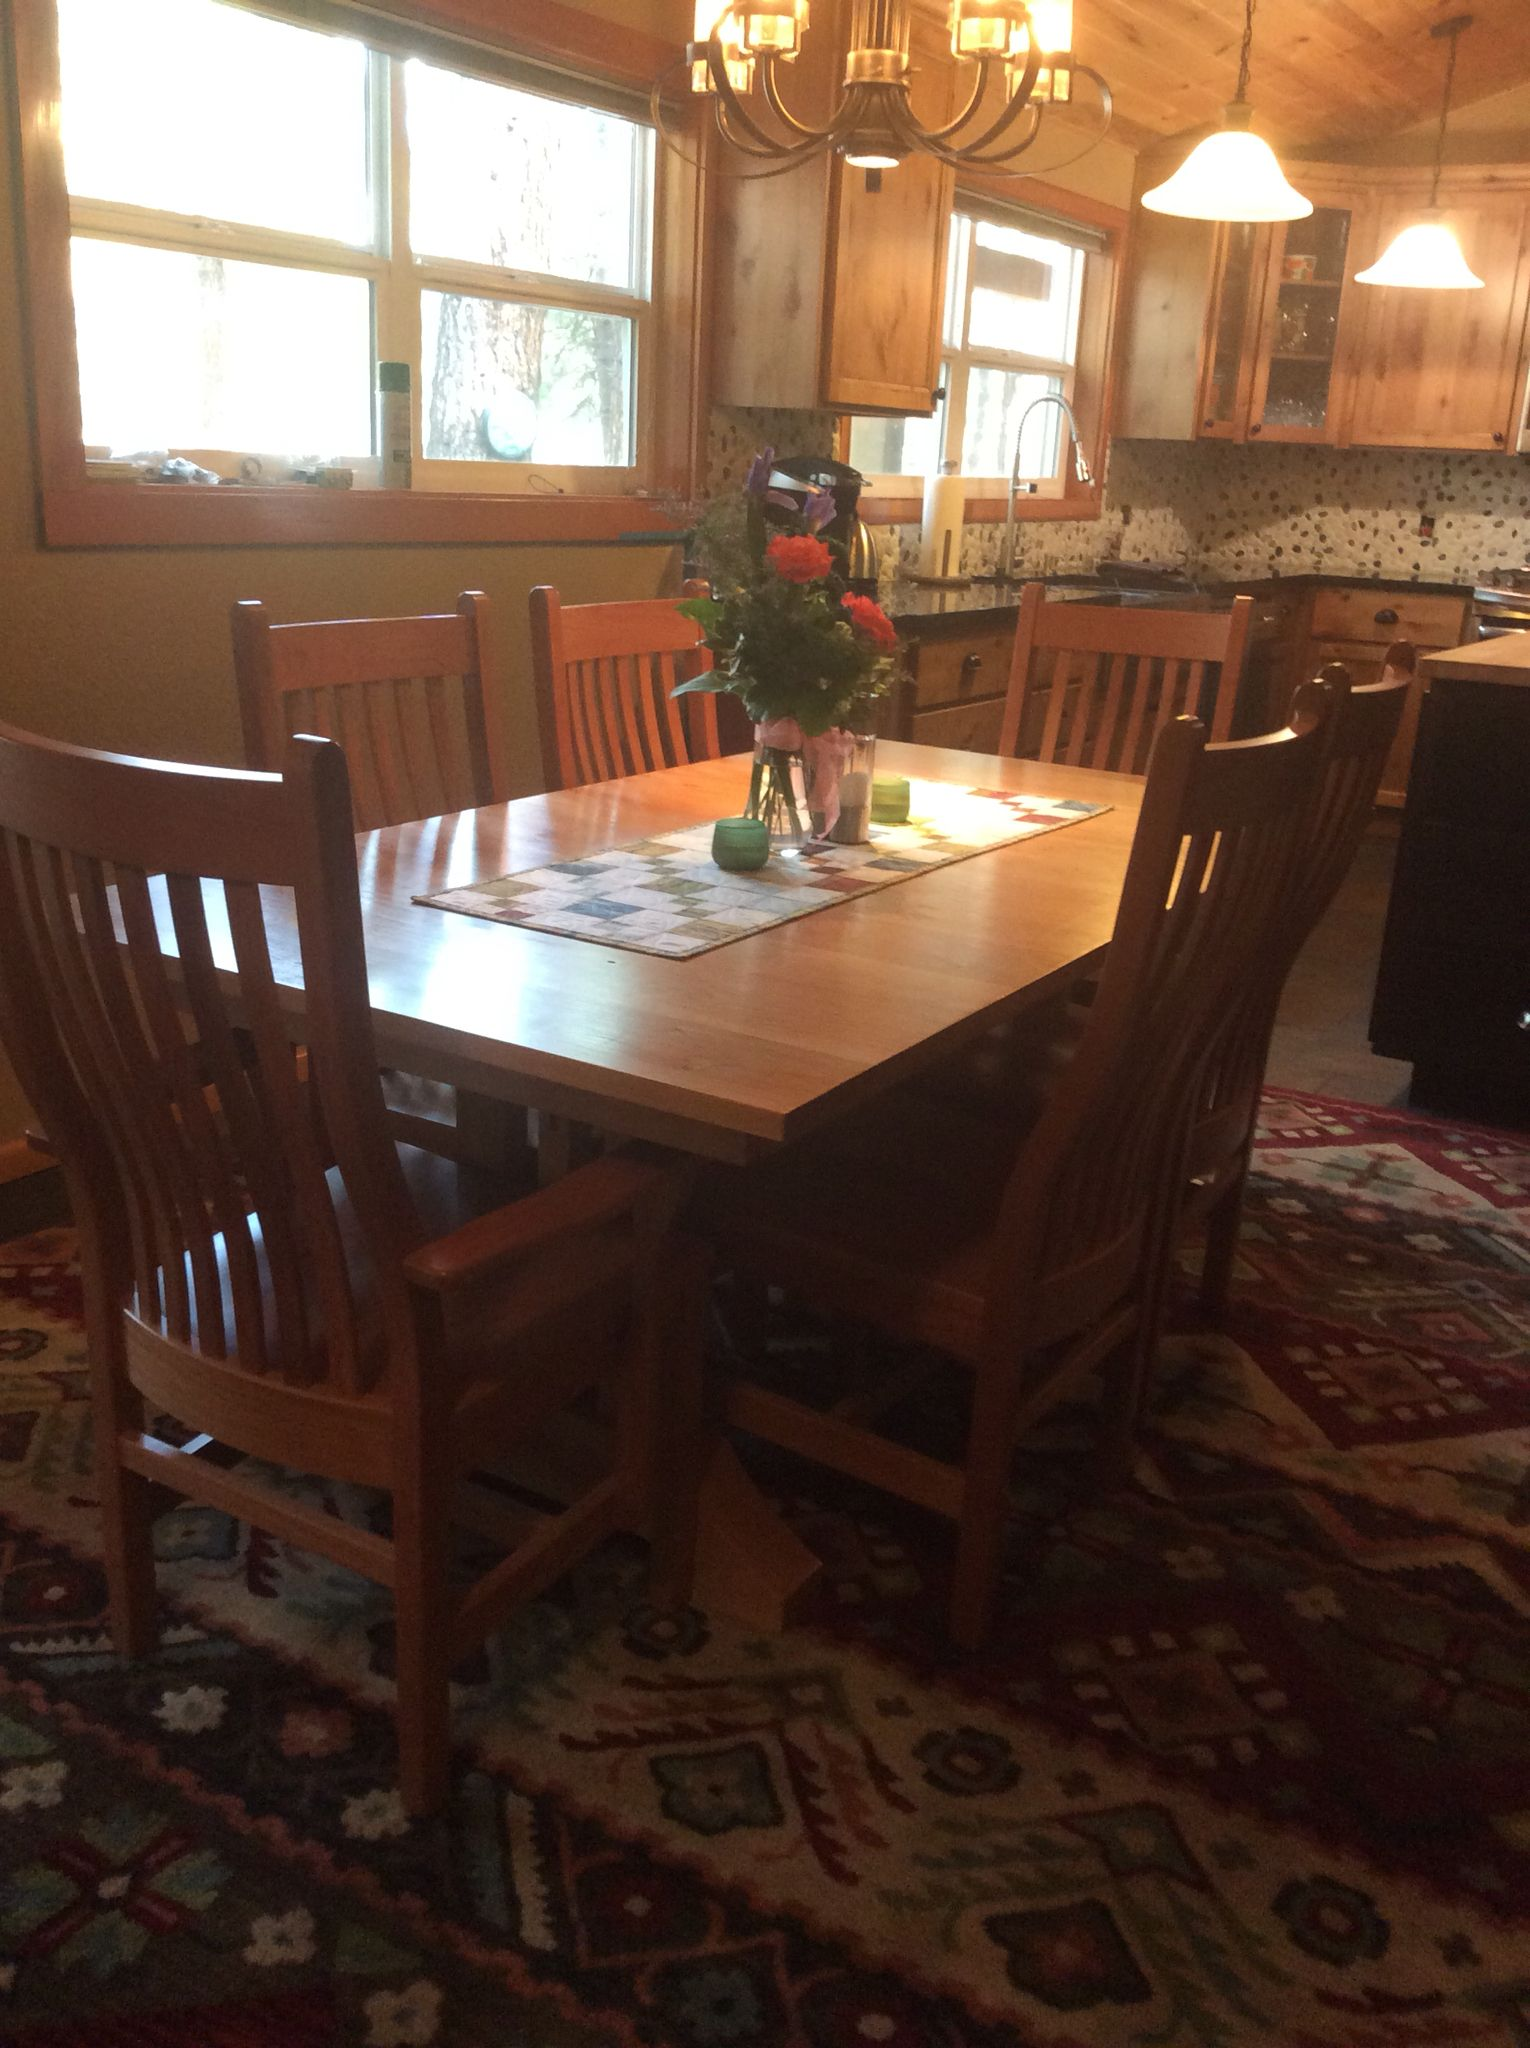 Dining room table that my husband built mission style made out of